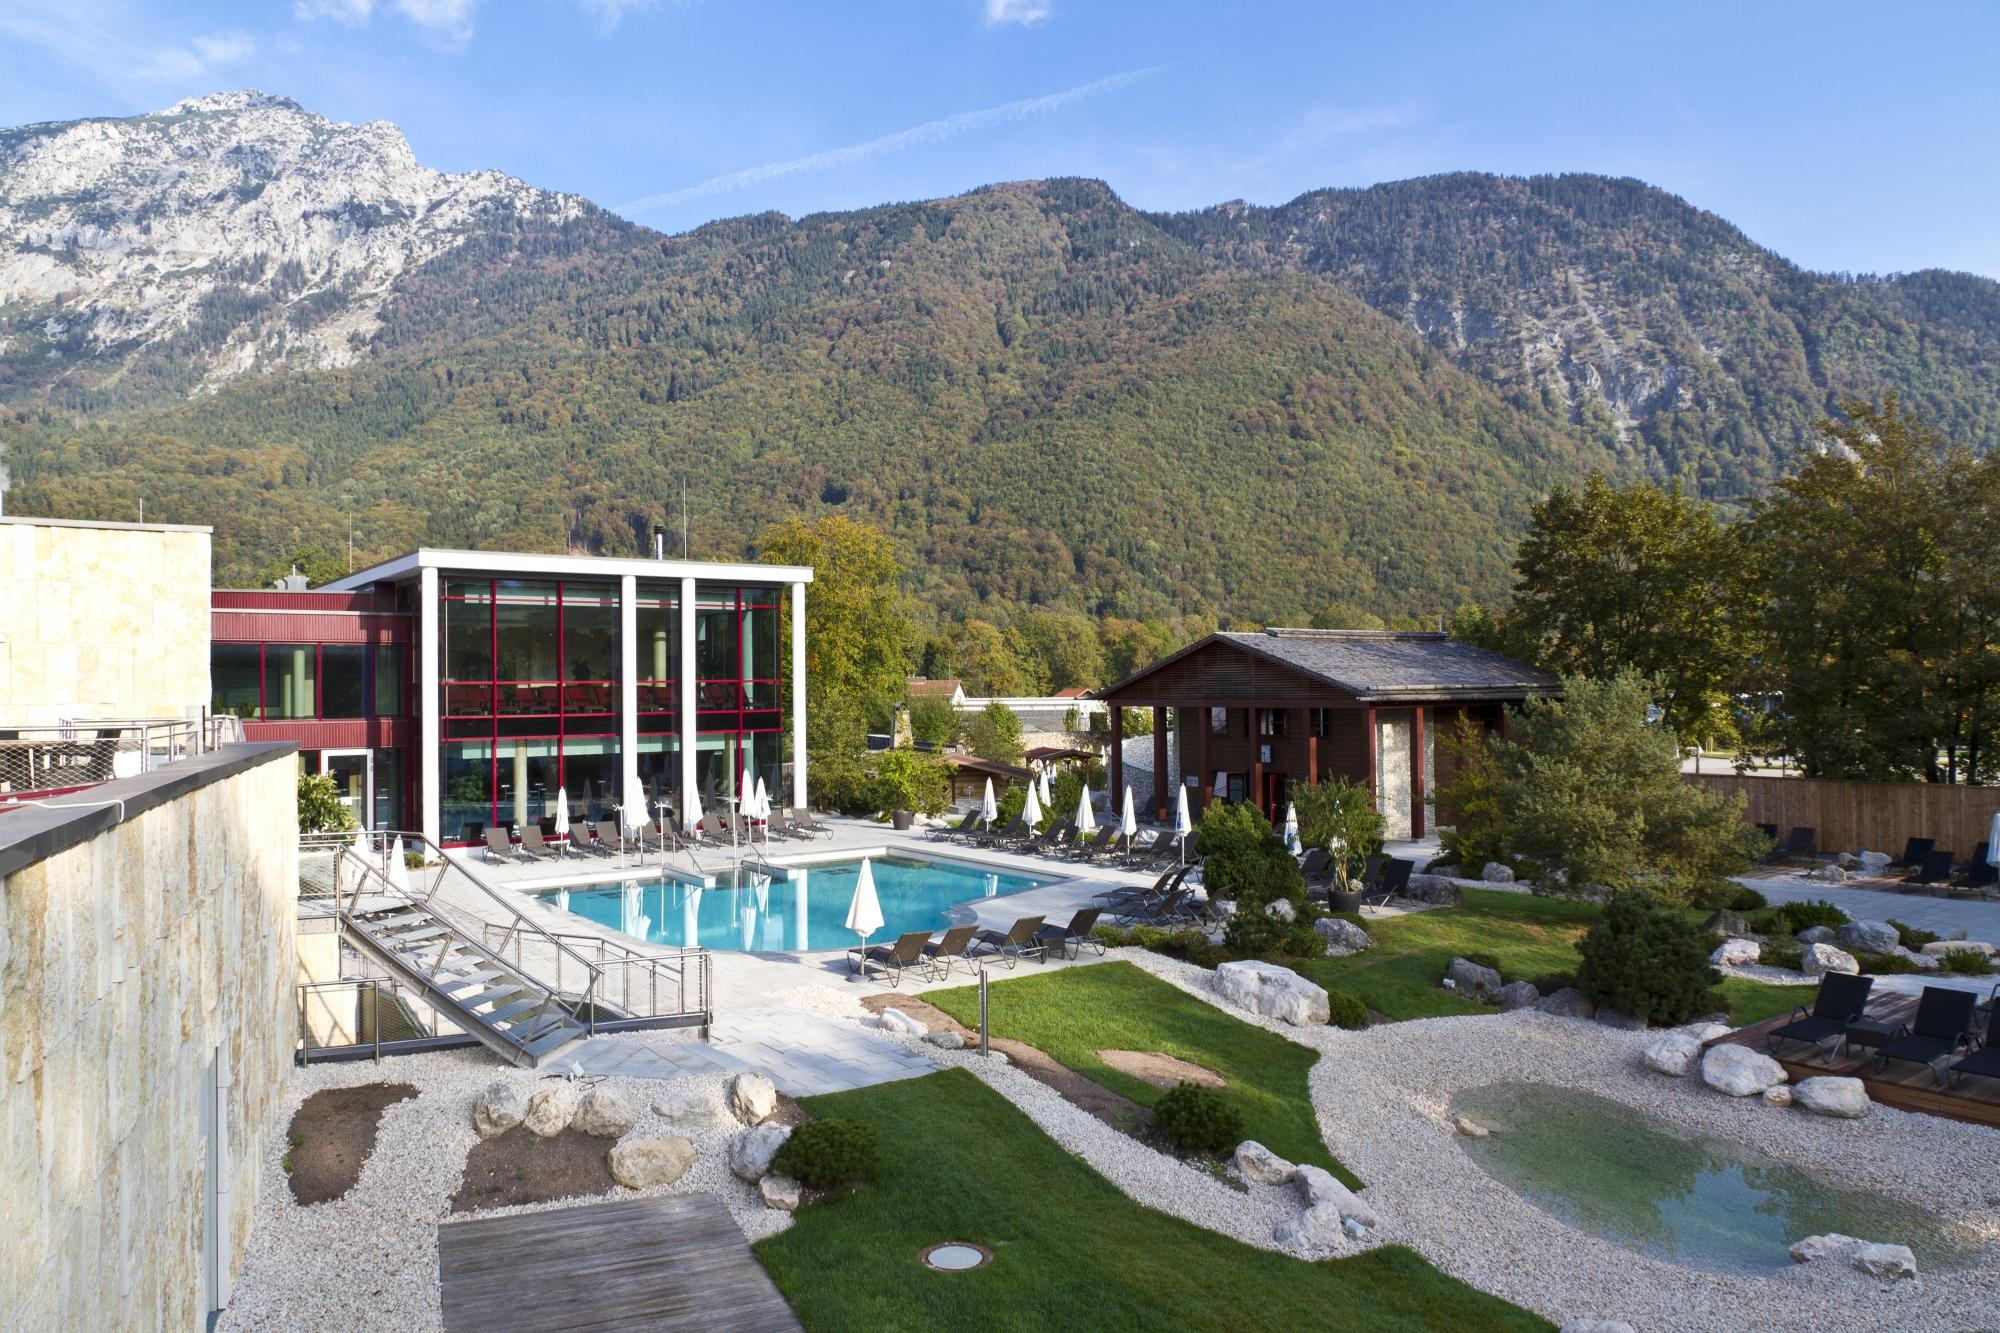 Spa Amp Familien Resort Rupertus Therme Bad Reichenhall Germany Top Tips Before You Go With